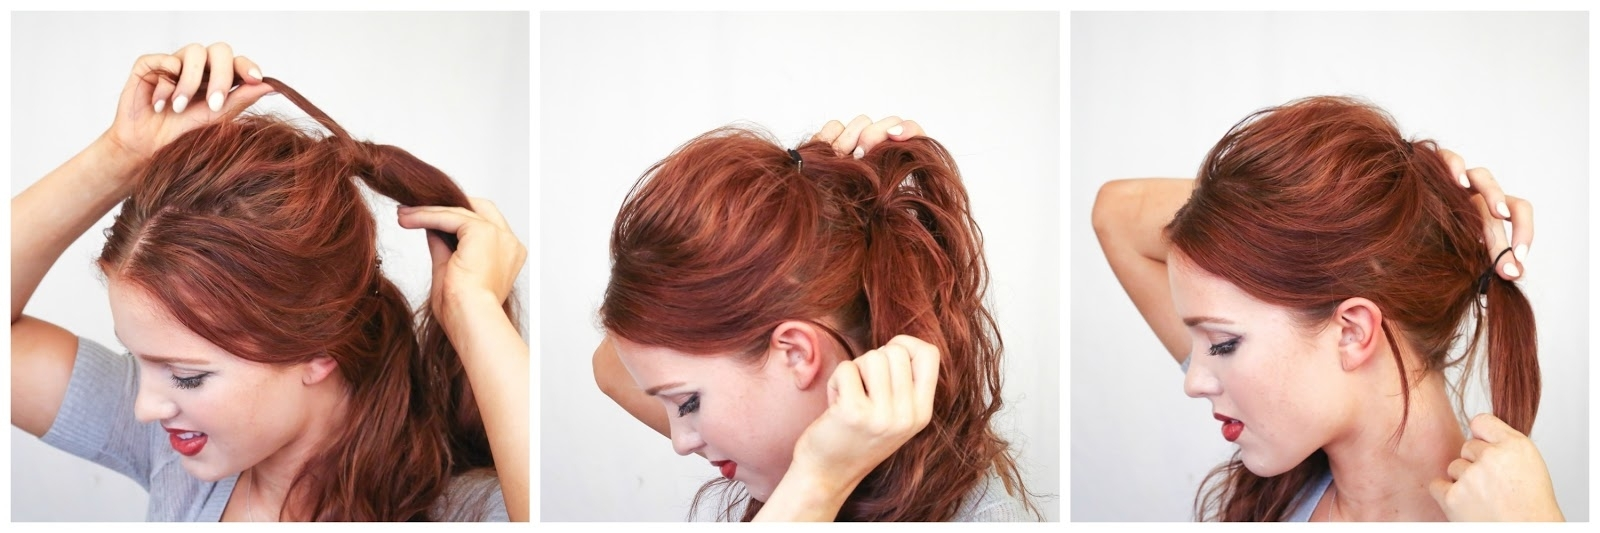 The Freckled Fox: Hair Tutorial: D&g Inspired Textured Double Ponytail Regarding Favorite Double Tied Pony Hairstyles (View 10 of 20)